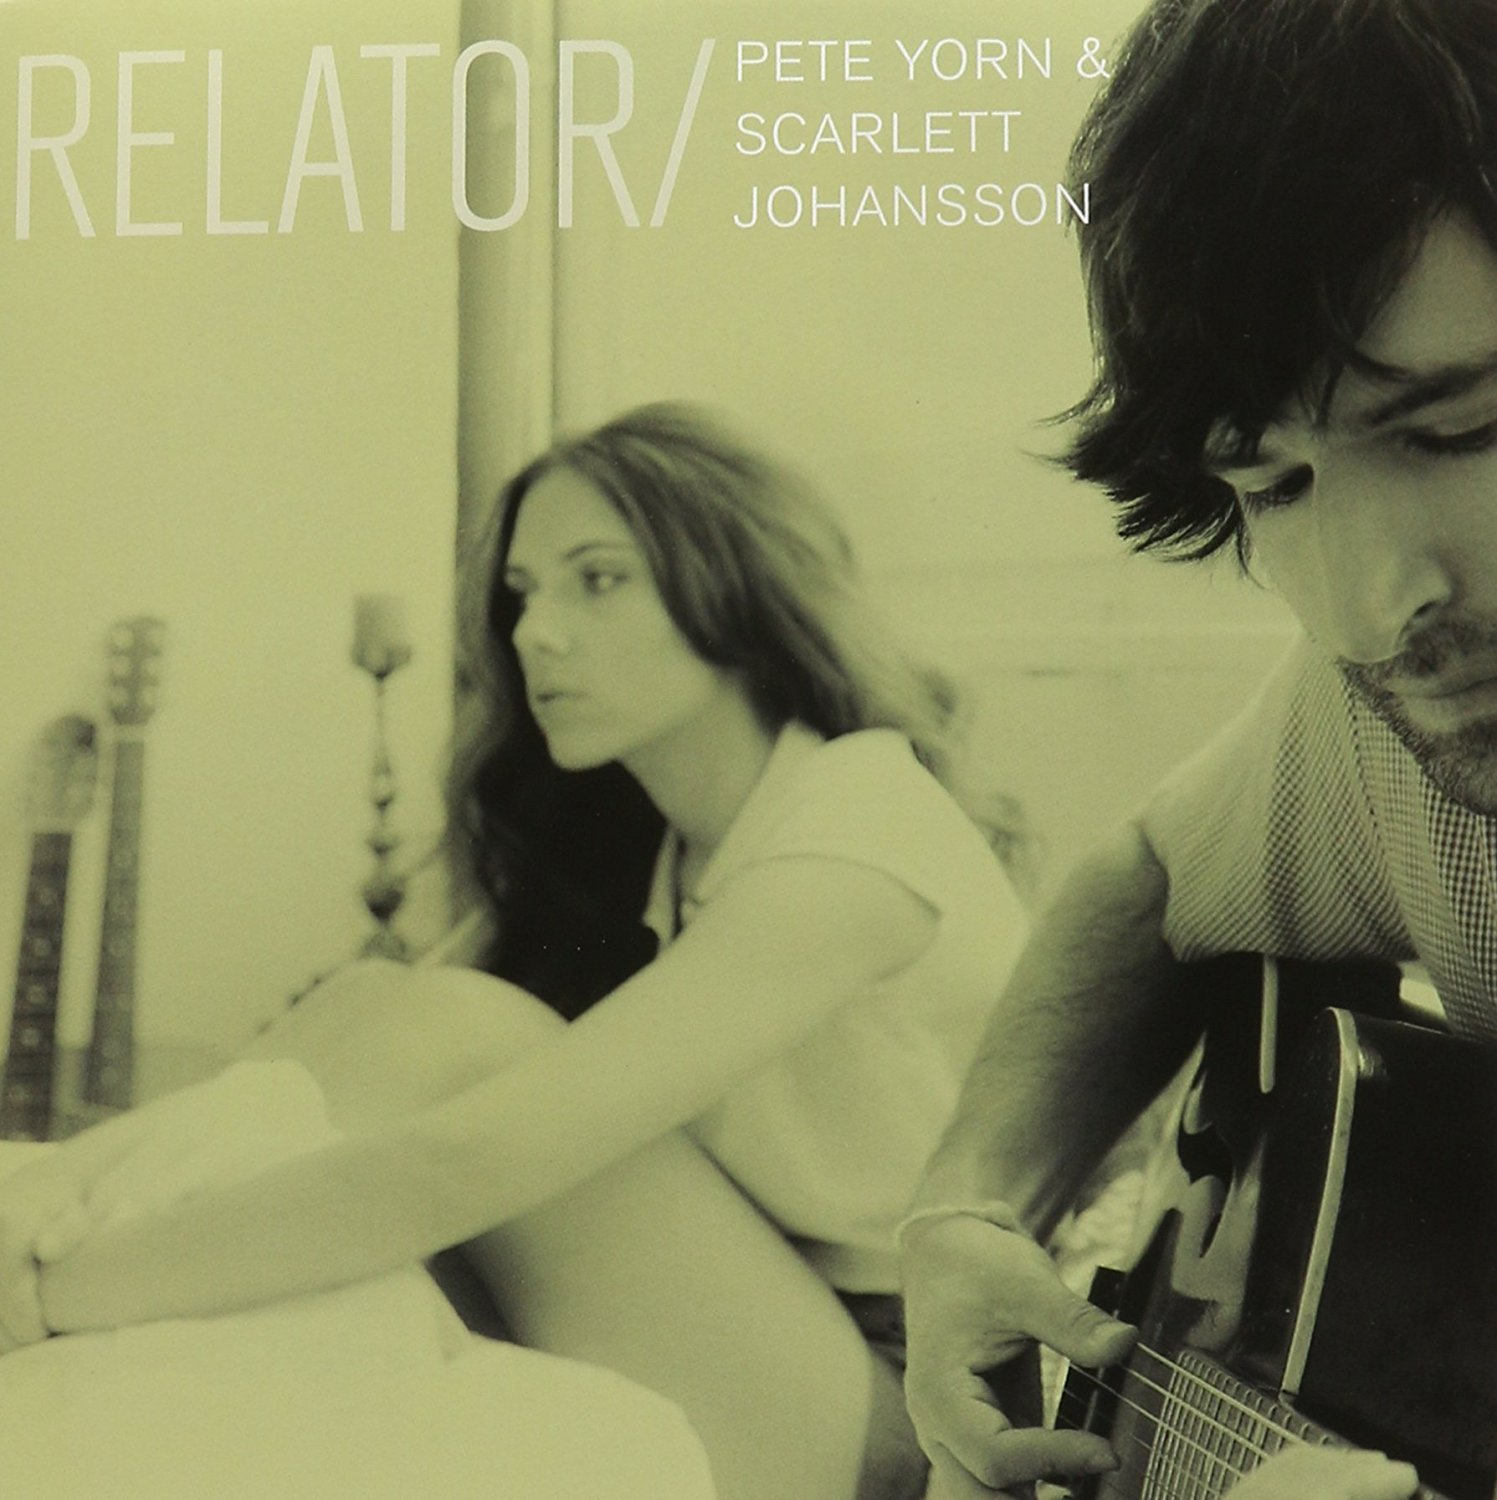 Pete Yorn & Scarlett Johansson - Relator/I Don't Know What To Do [Limited Edition Vinyl Single]